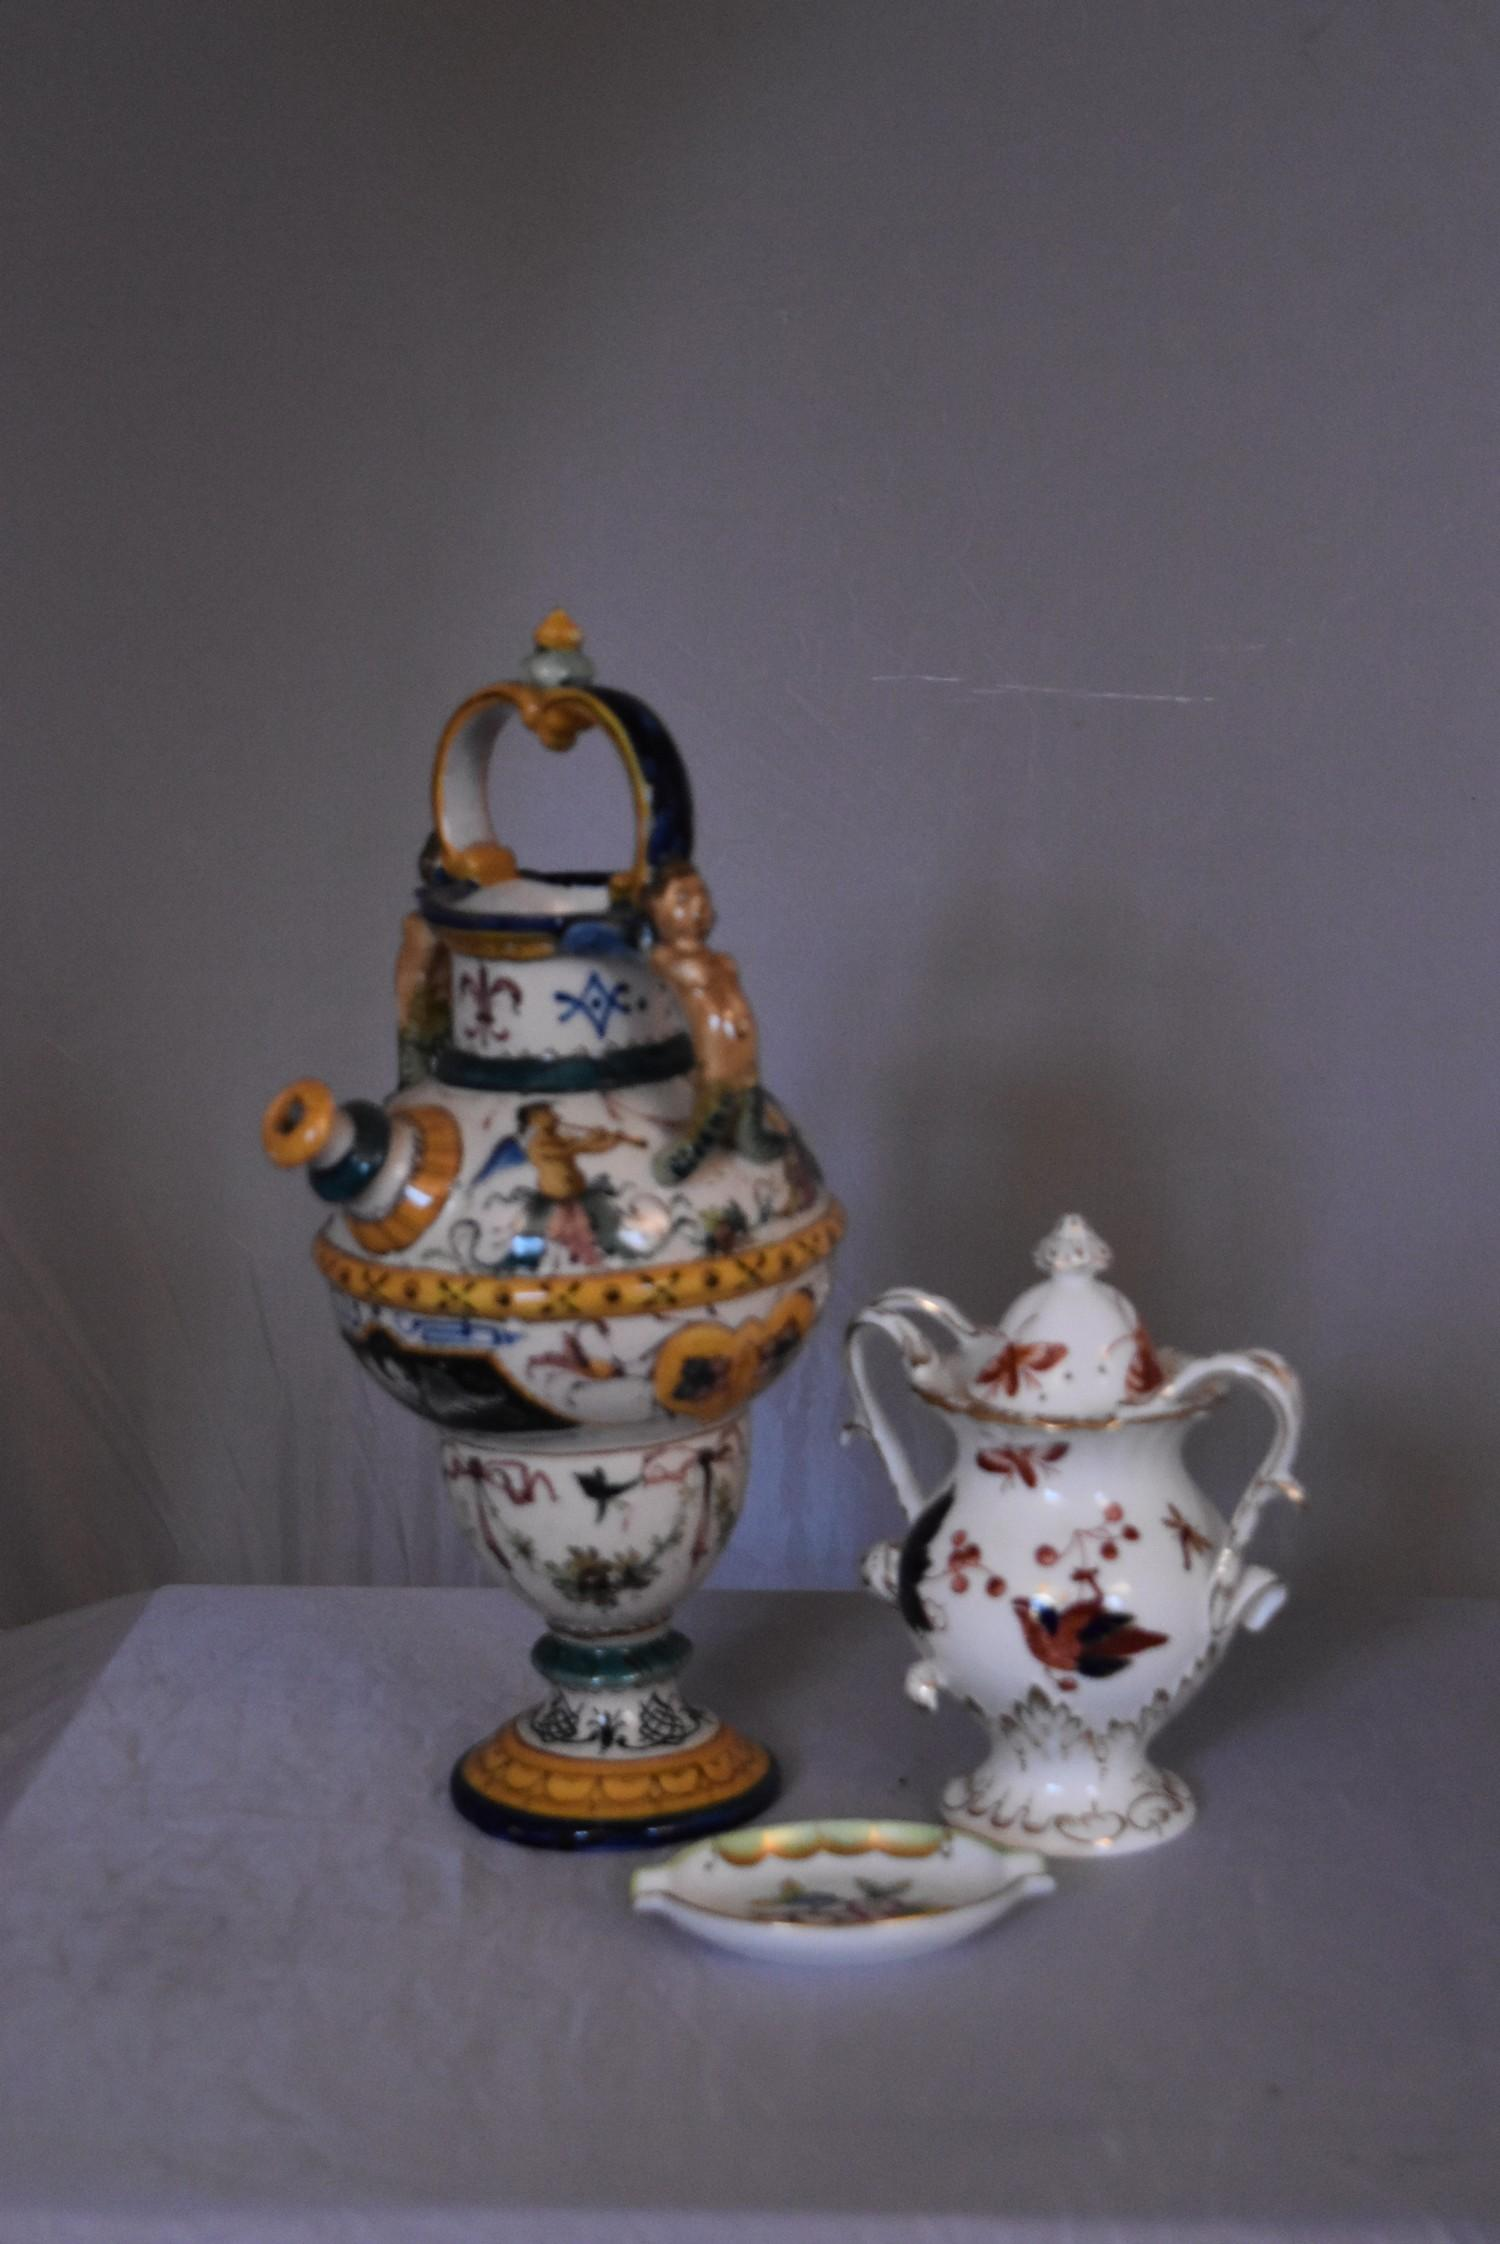 A collection of hand painted porcelain and ceramics. One Herend Ash tray with floral design and